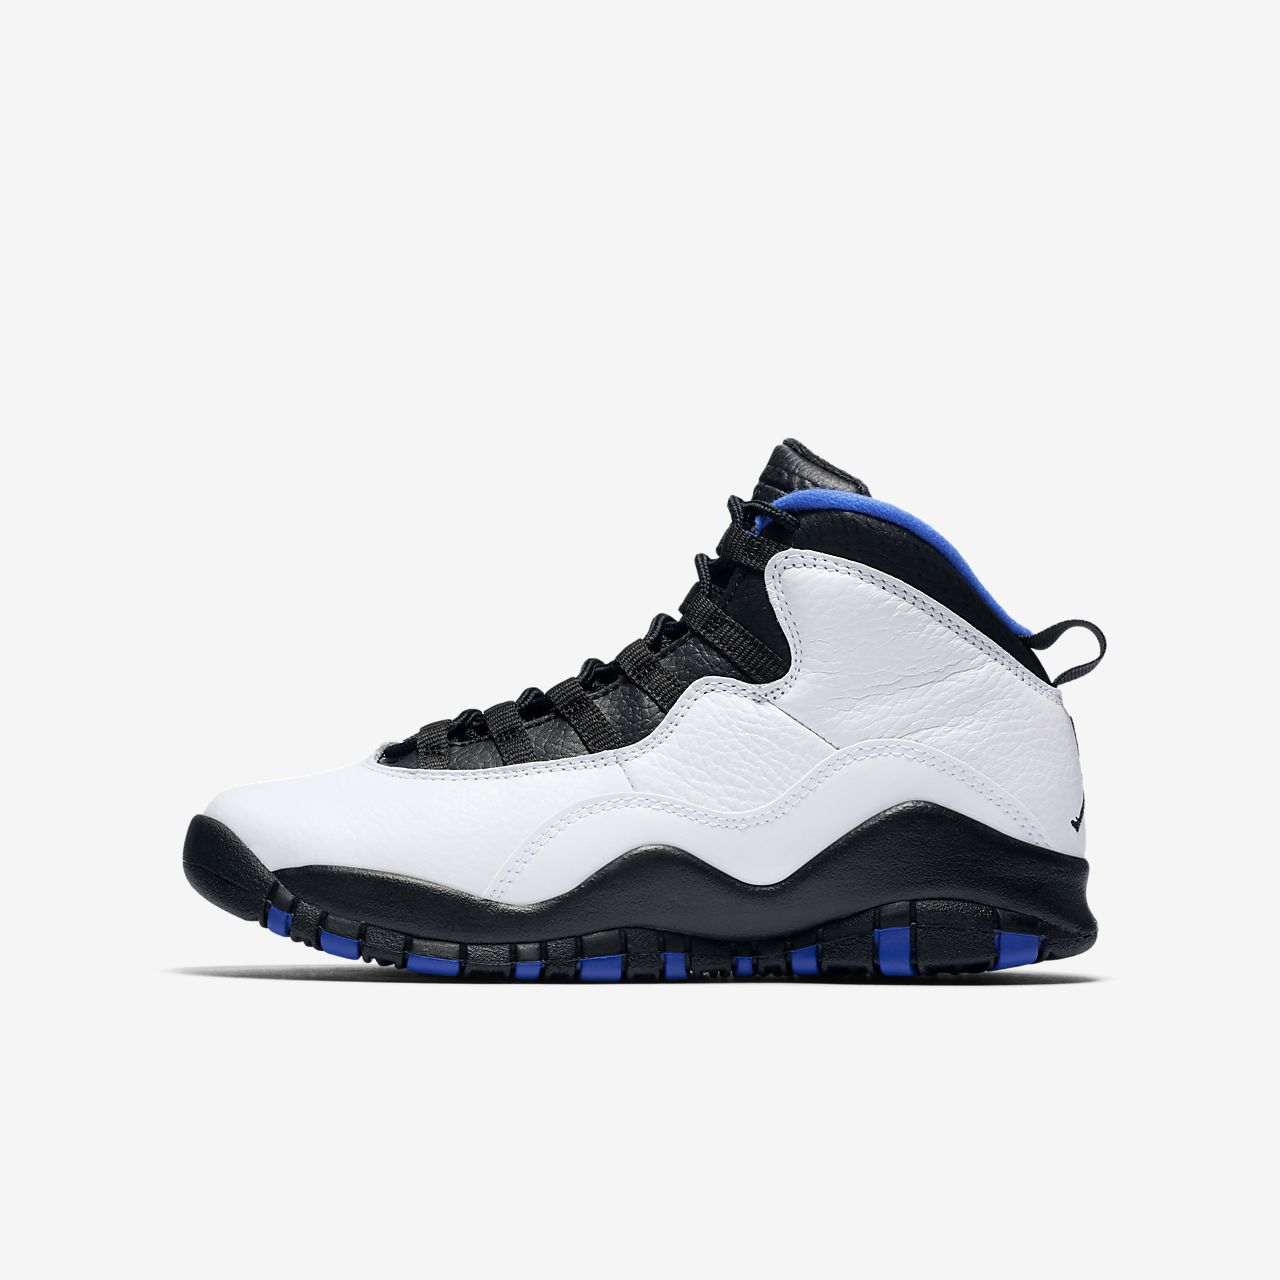 c4f81e9b221 Air Jordan Retro 10 (3.5y-7y) Big Kids  Shoe. Nike.com